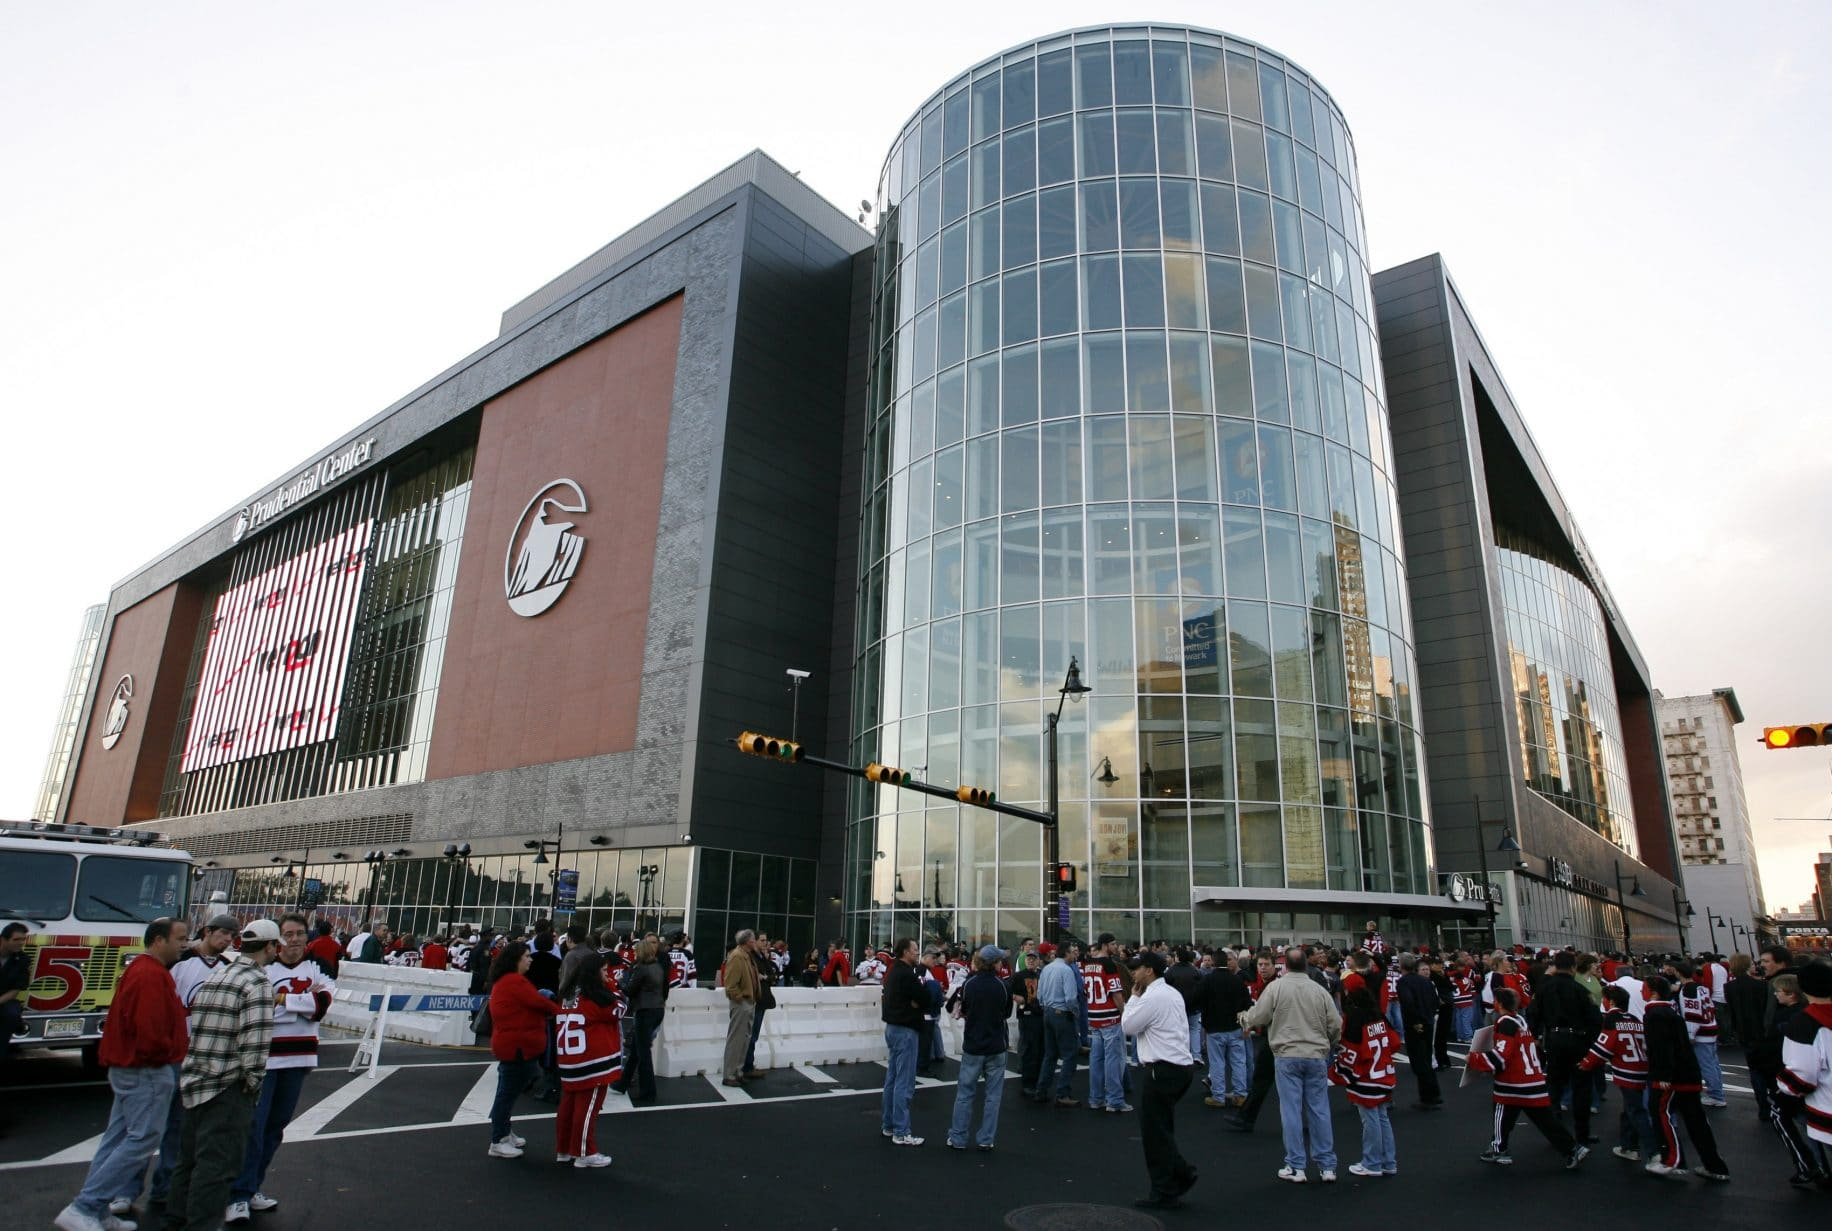 NEWARK NJ – OCTOBER 27 Fans wait outside before a game between the Ottawa Senators and the New Jersey Devils at the Prudential Center October 27